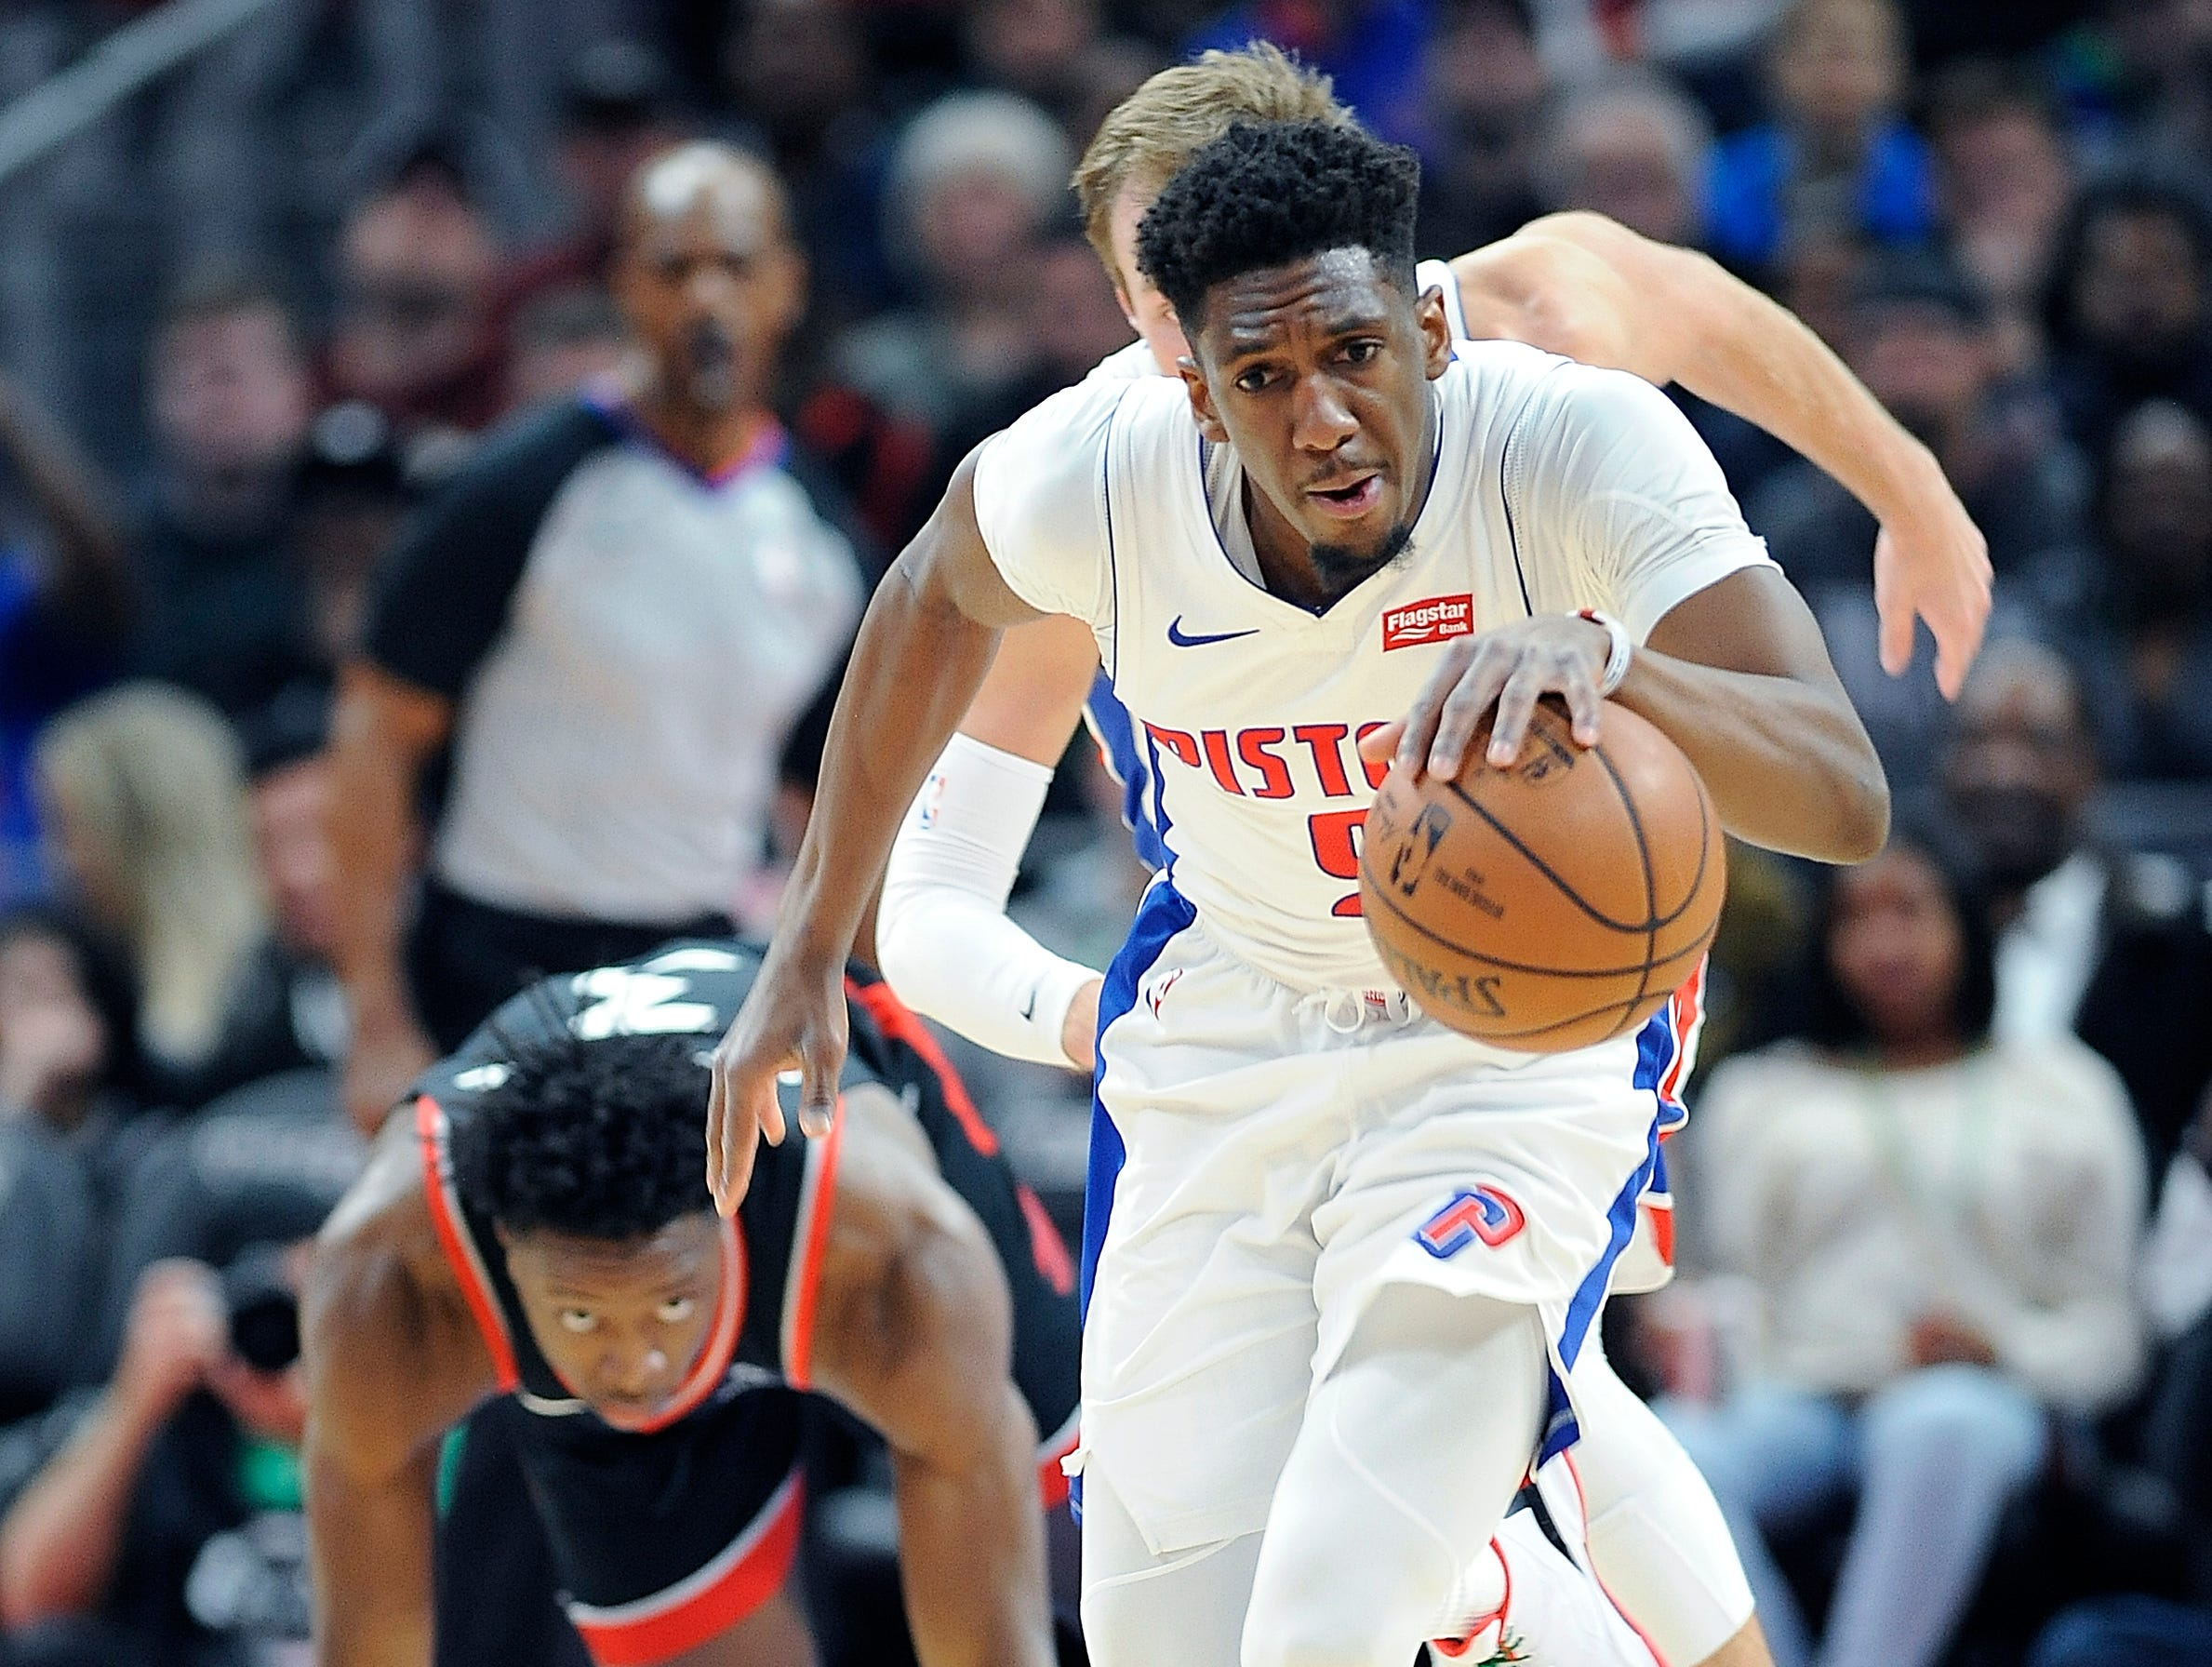 Pistons' Langston Galloway races up court after a steal by Luke Kennard in the fourth quarter.